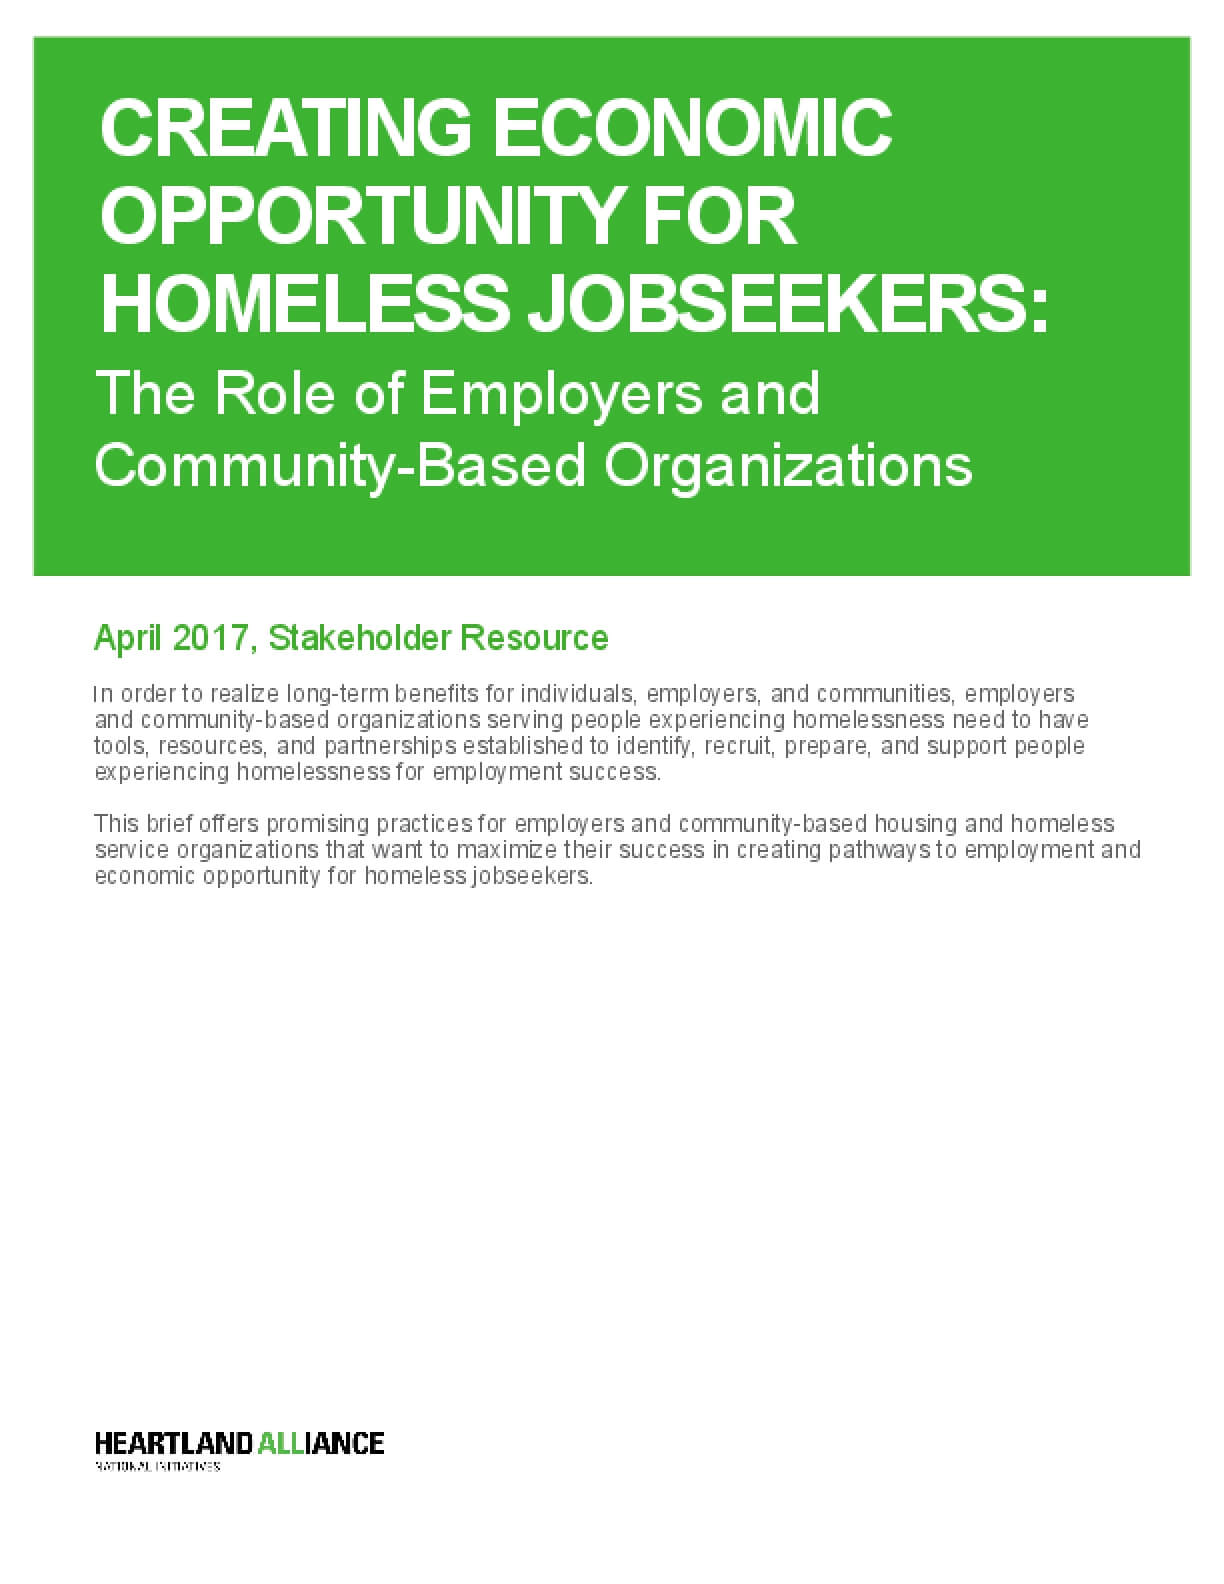 Creating Economic Opportunity for Homeless Jobseekers: The Role of Employers and Community-Based Organizations